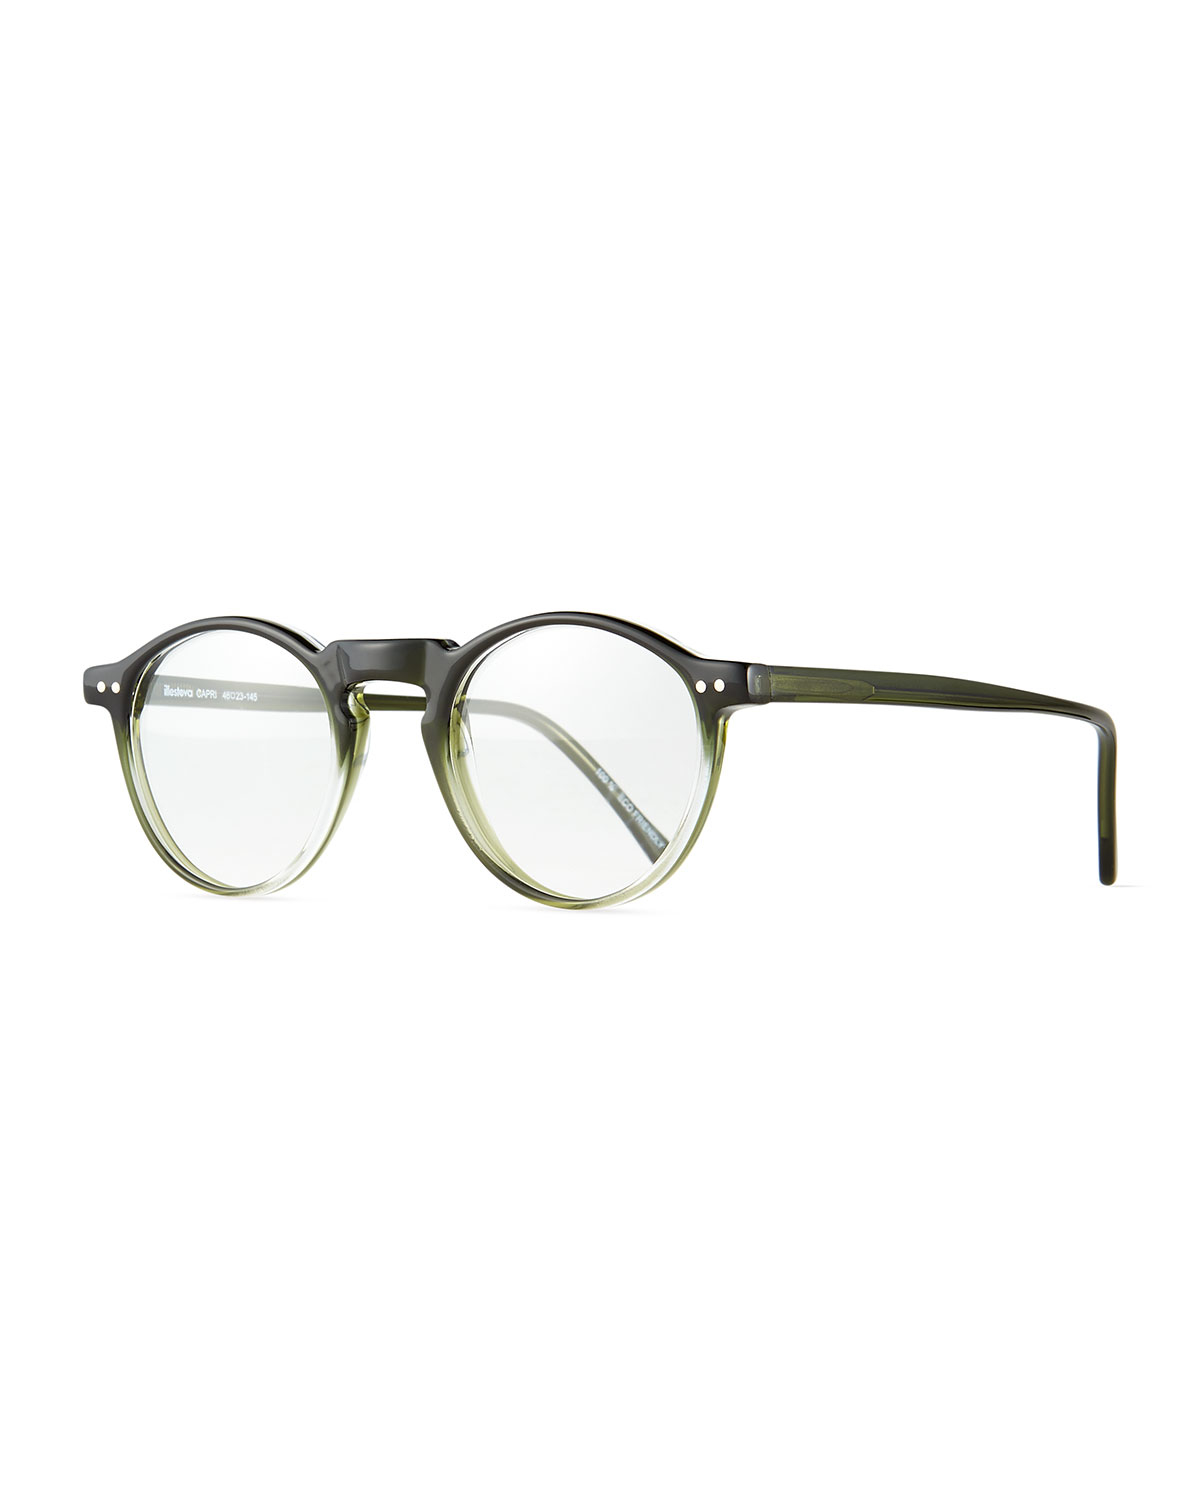 Lyst - Illesteva Capri Round Optical Frames W/ Clip-on Sunglasses in ...